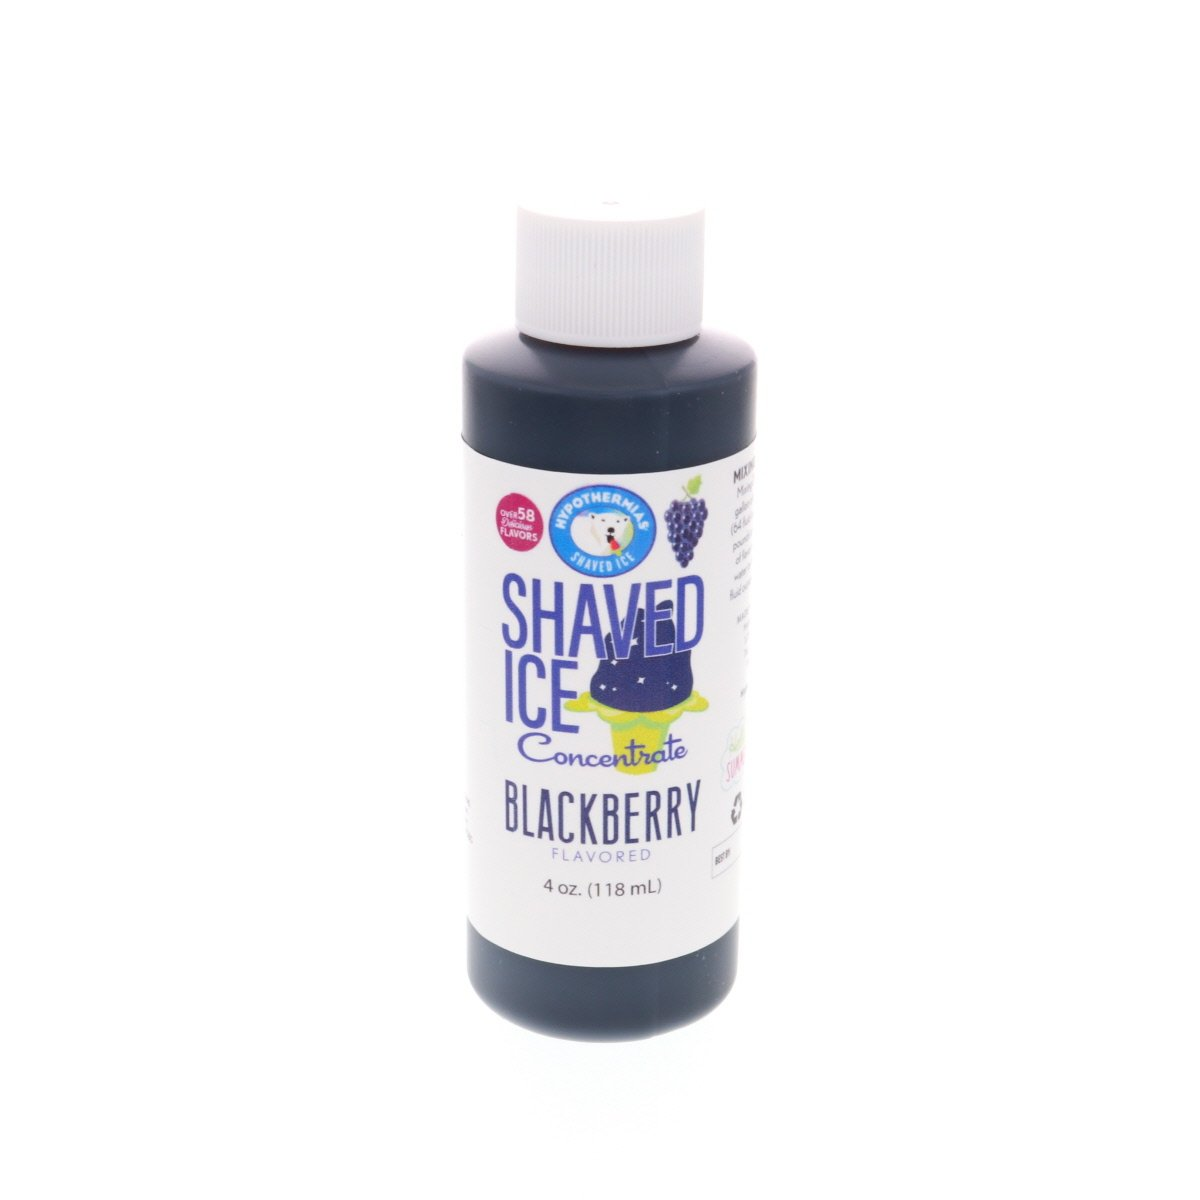 Blackberry shaved ice flavor syrup concentrate 4 Fl Oz